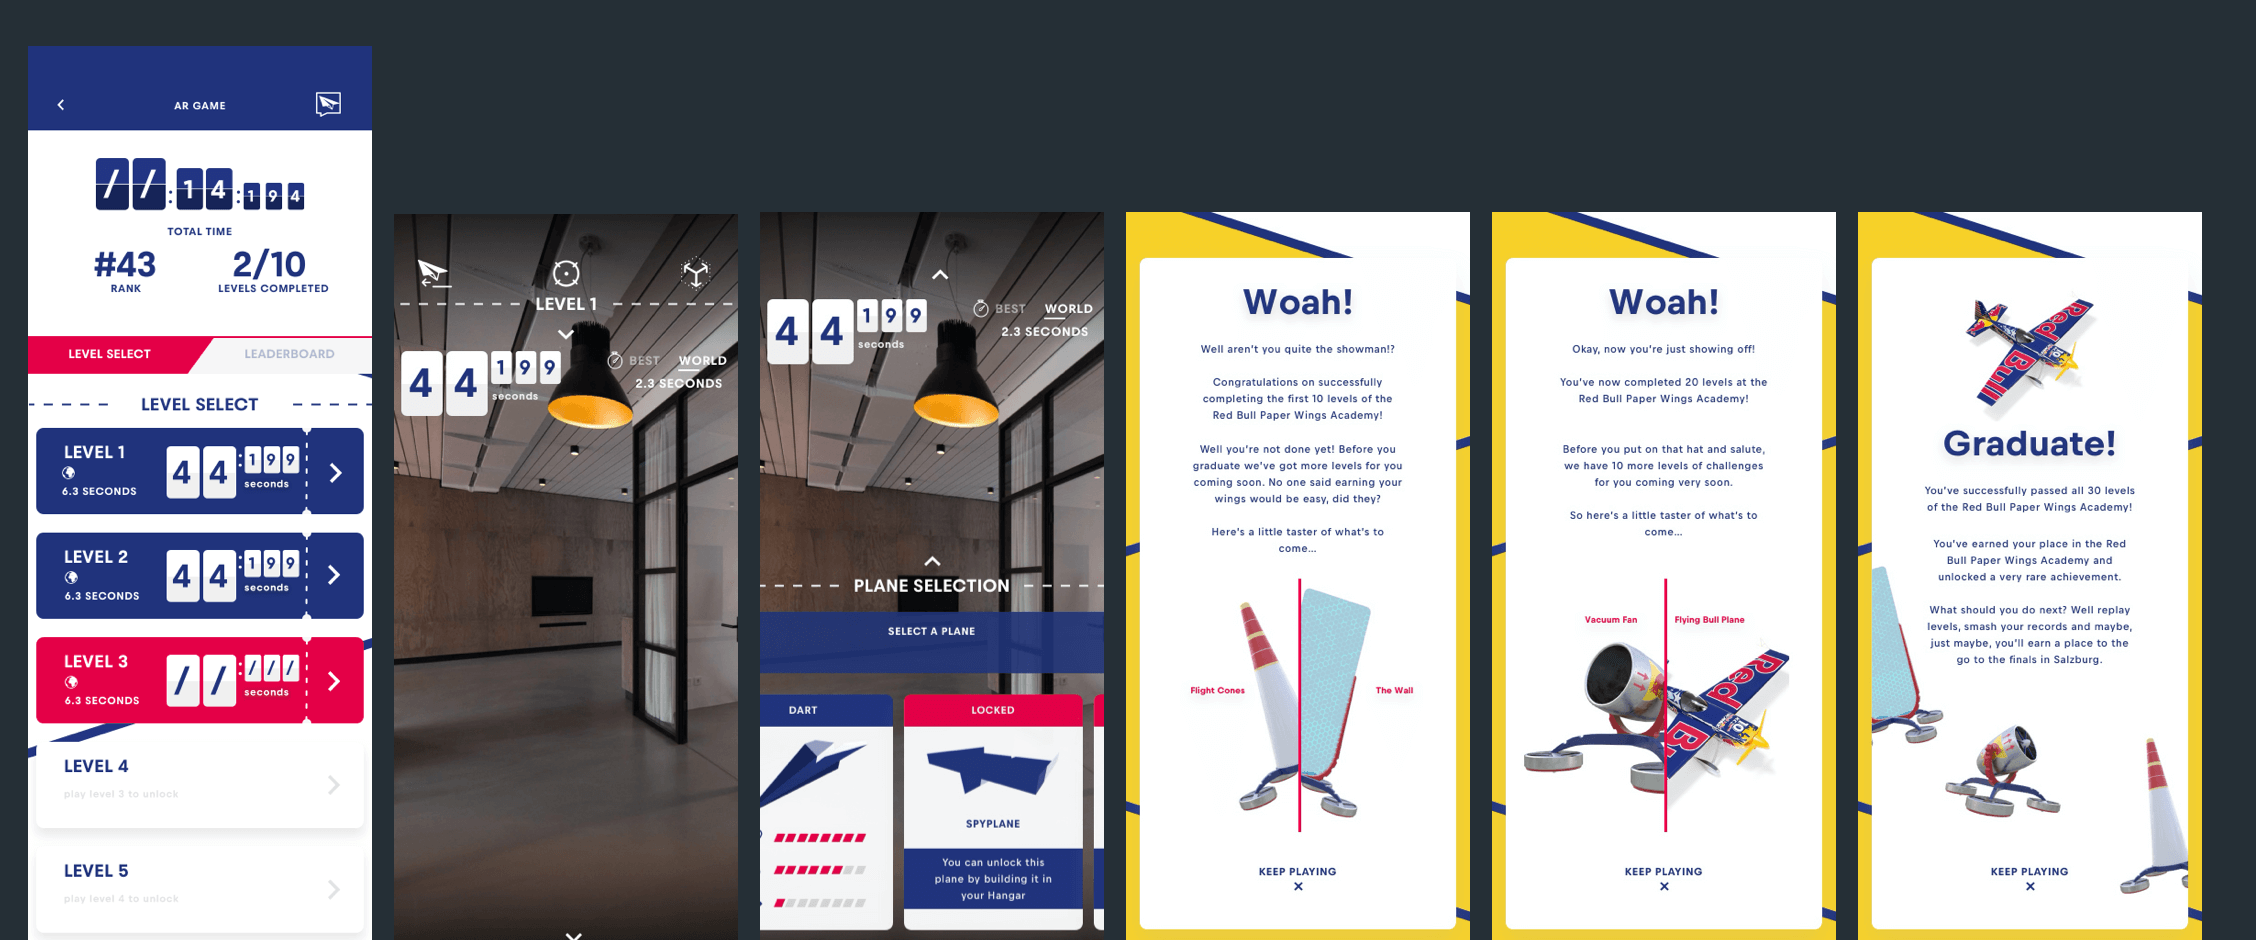 Screen designs for the flight academy section of the app